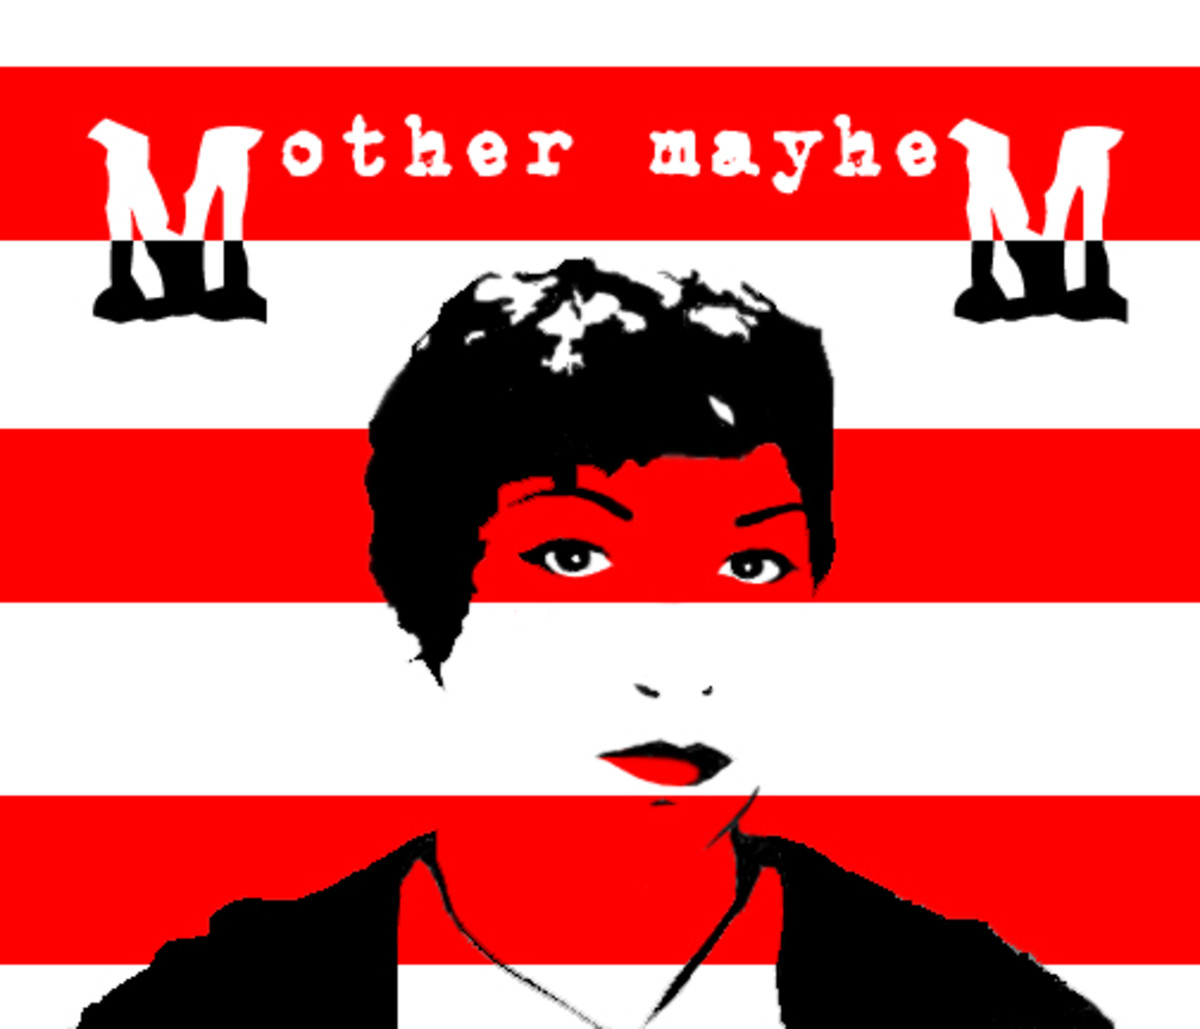 """Mother Mayhem"" by artist EnfantDeriviere on DeviantArt.net"